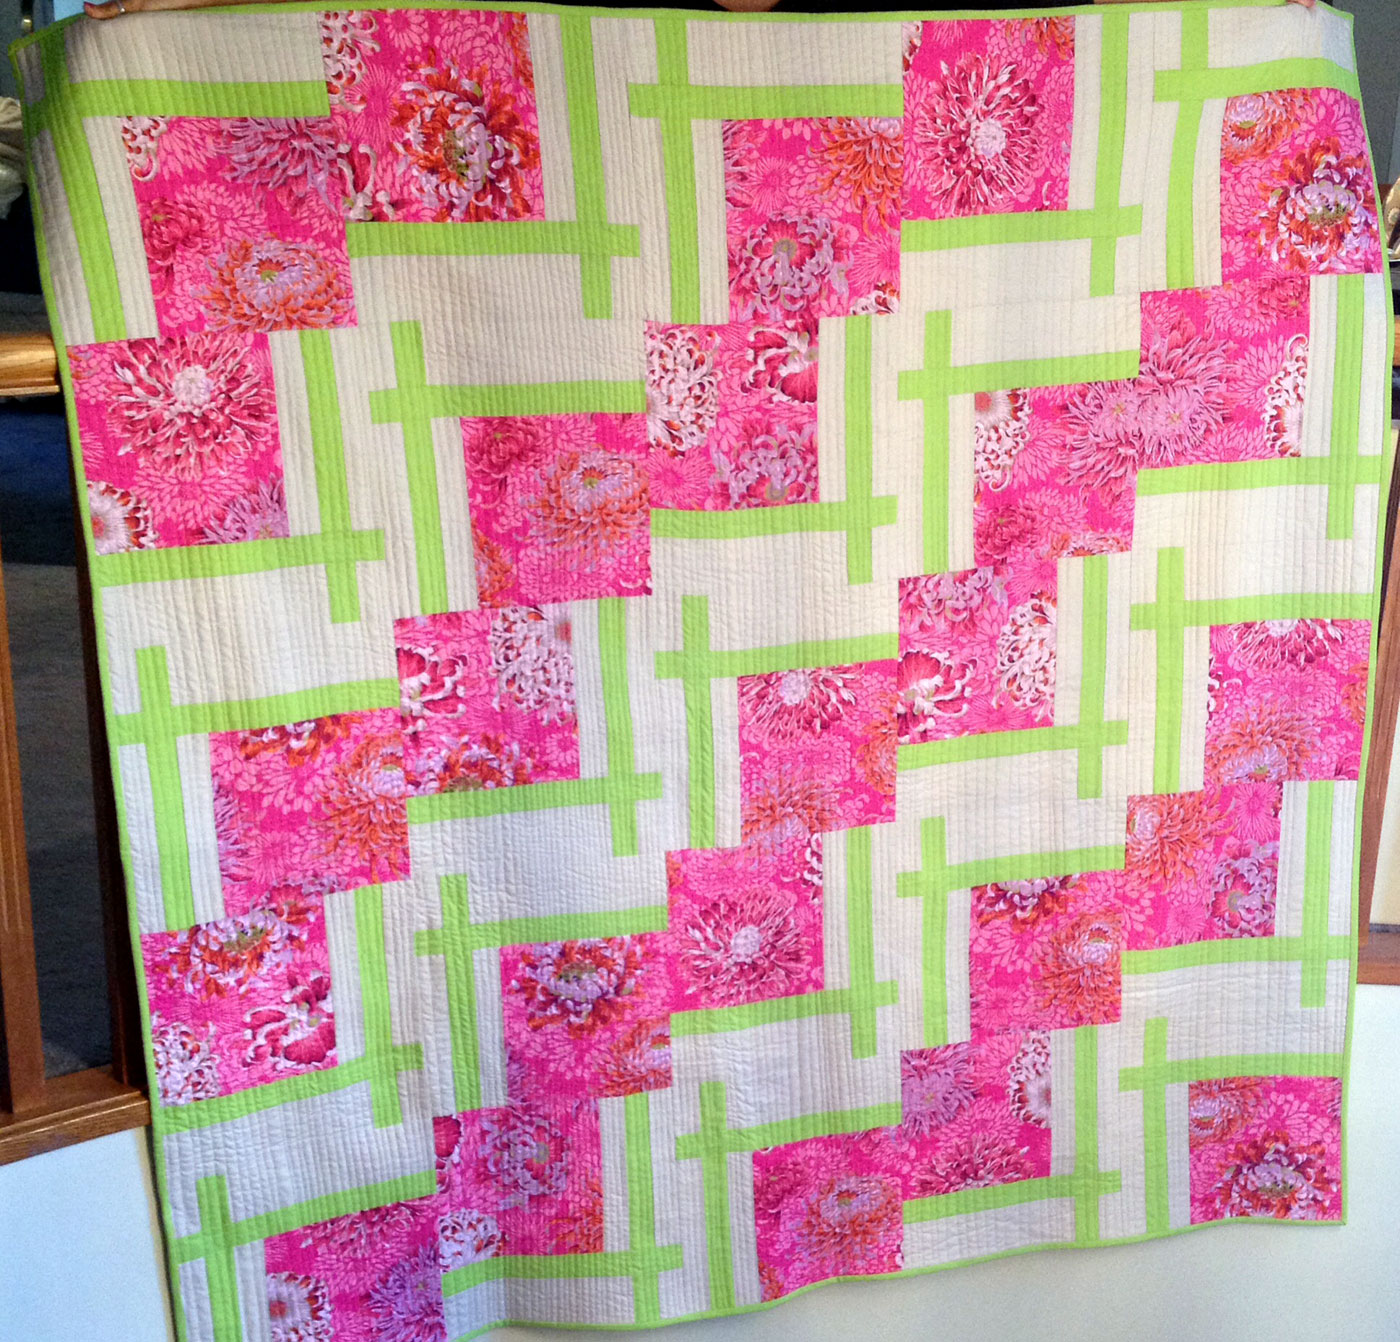 Foray into the Modern World - quilt for sale in my shop